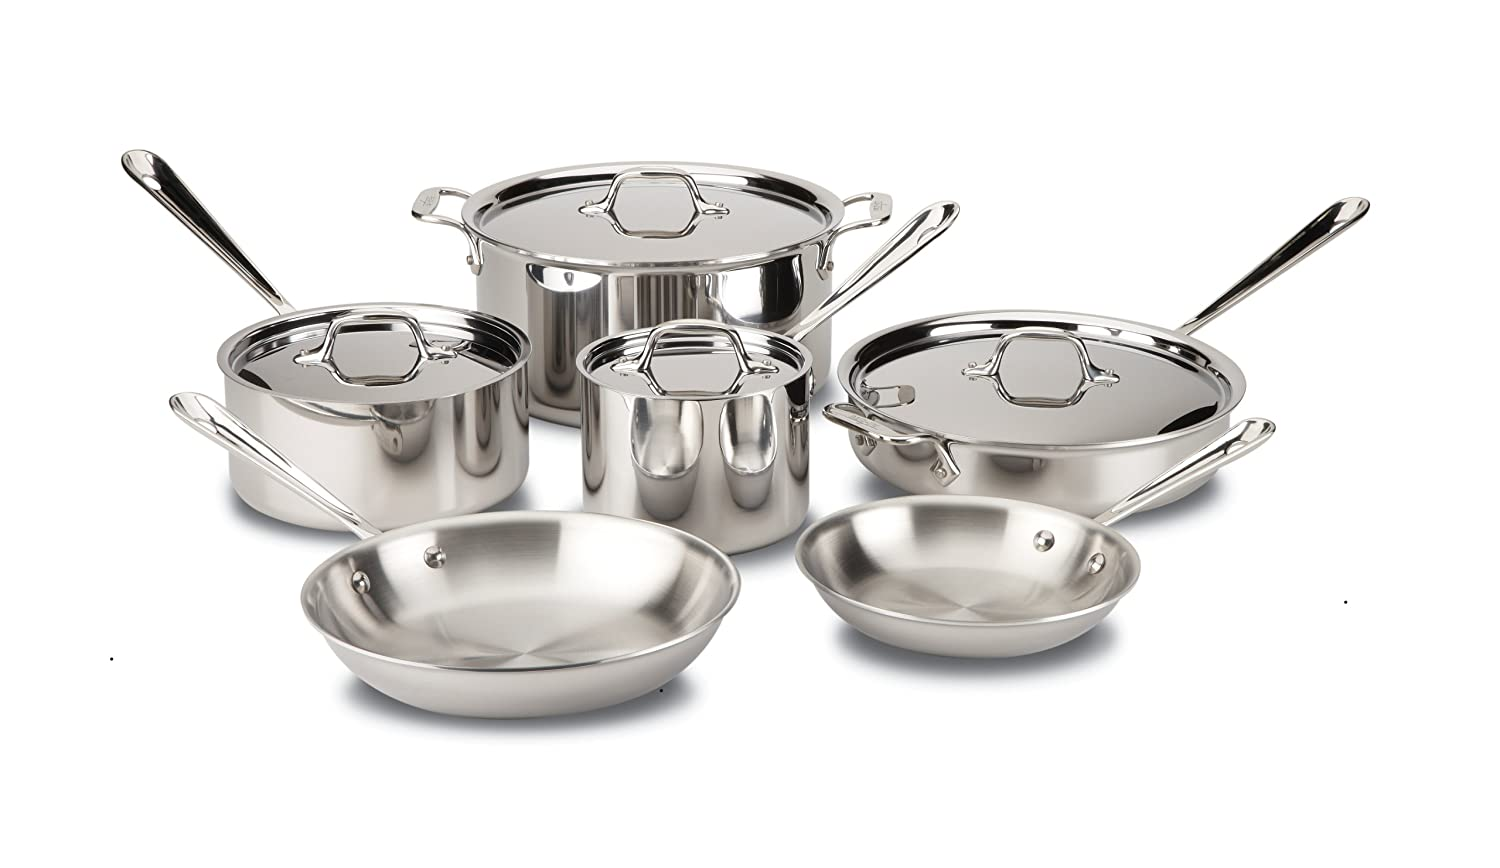 All-Clad Stainless steel Tri-ply 10-piece Silver Cookware set